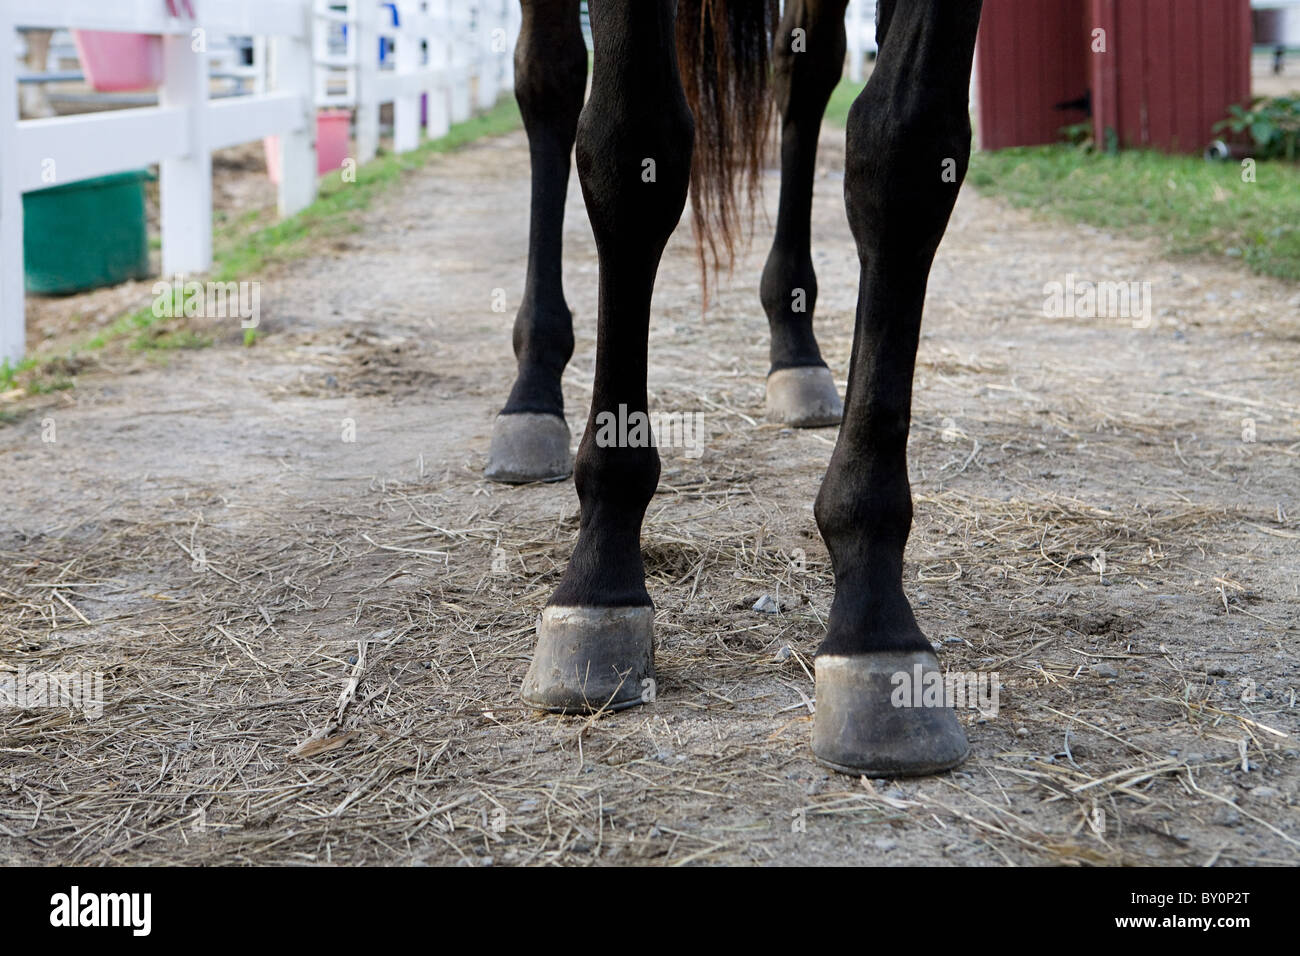 Horse's legs and hooves - Stock Image